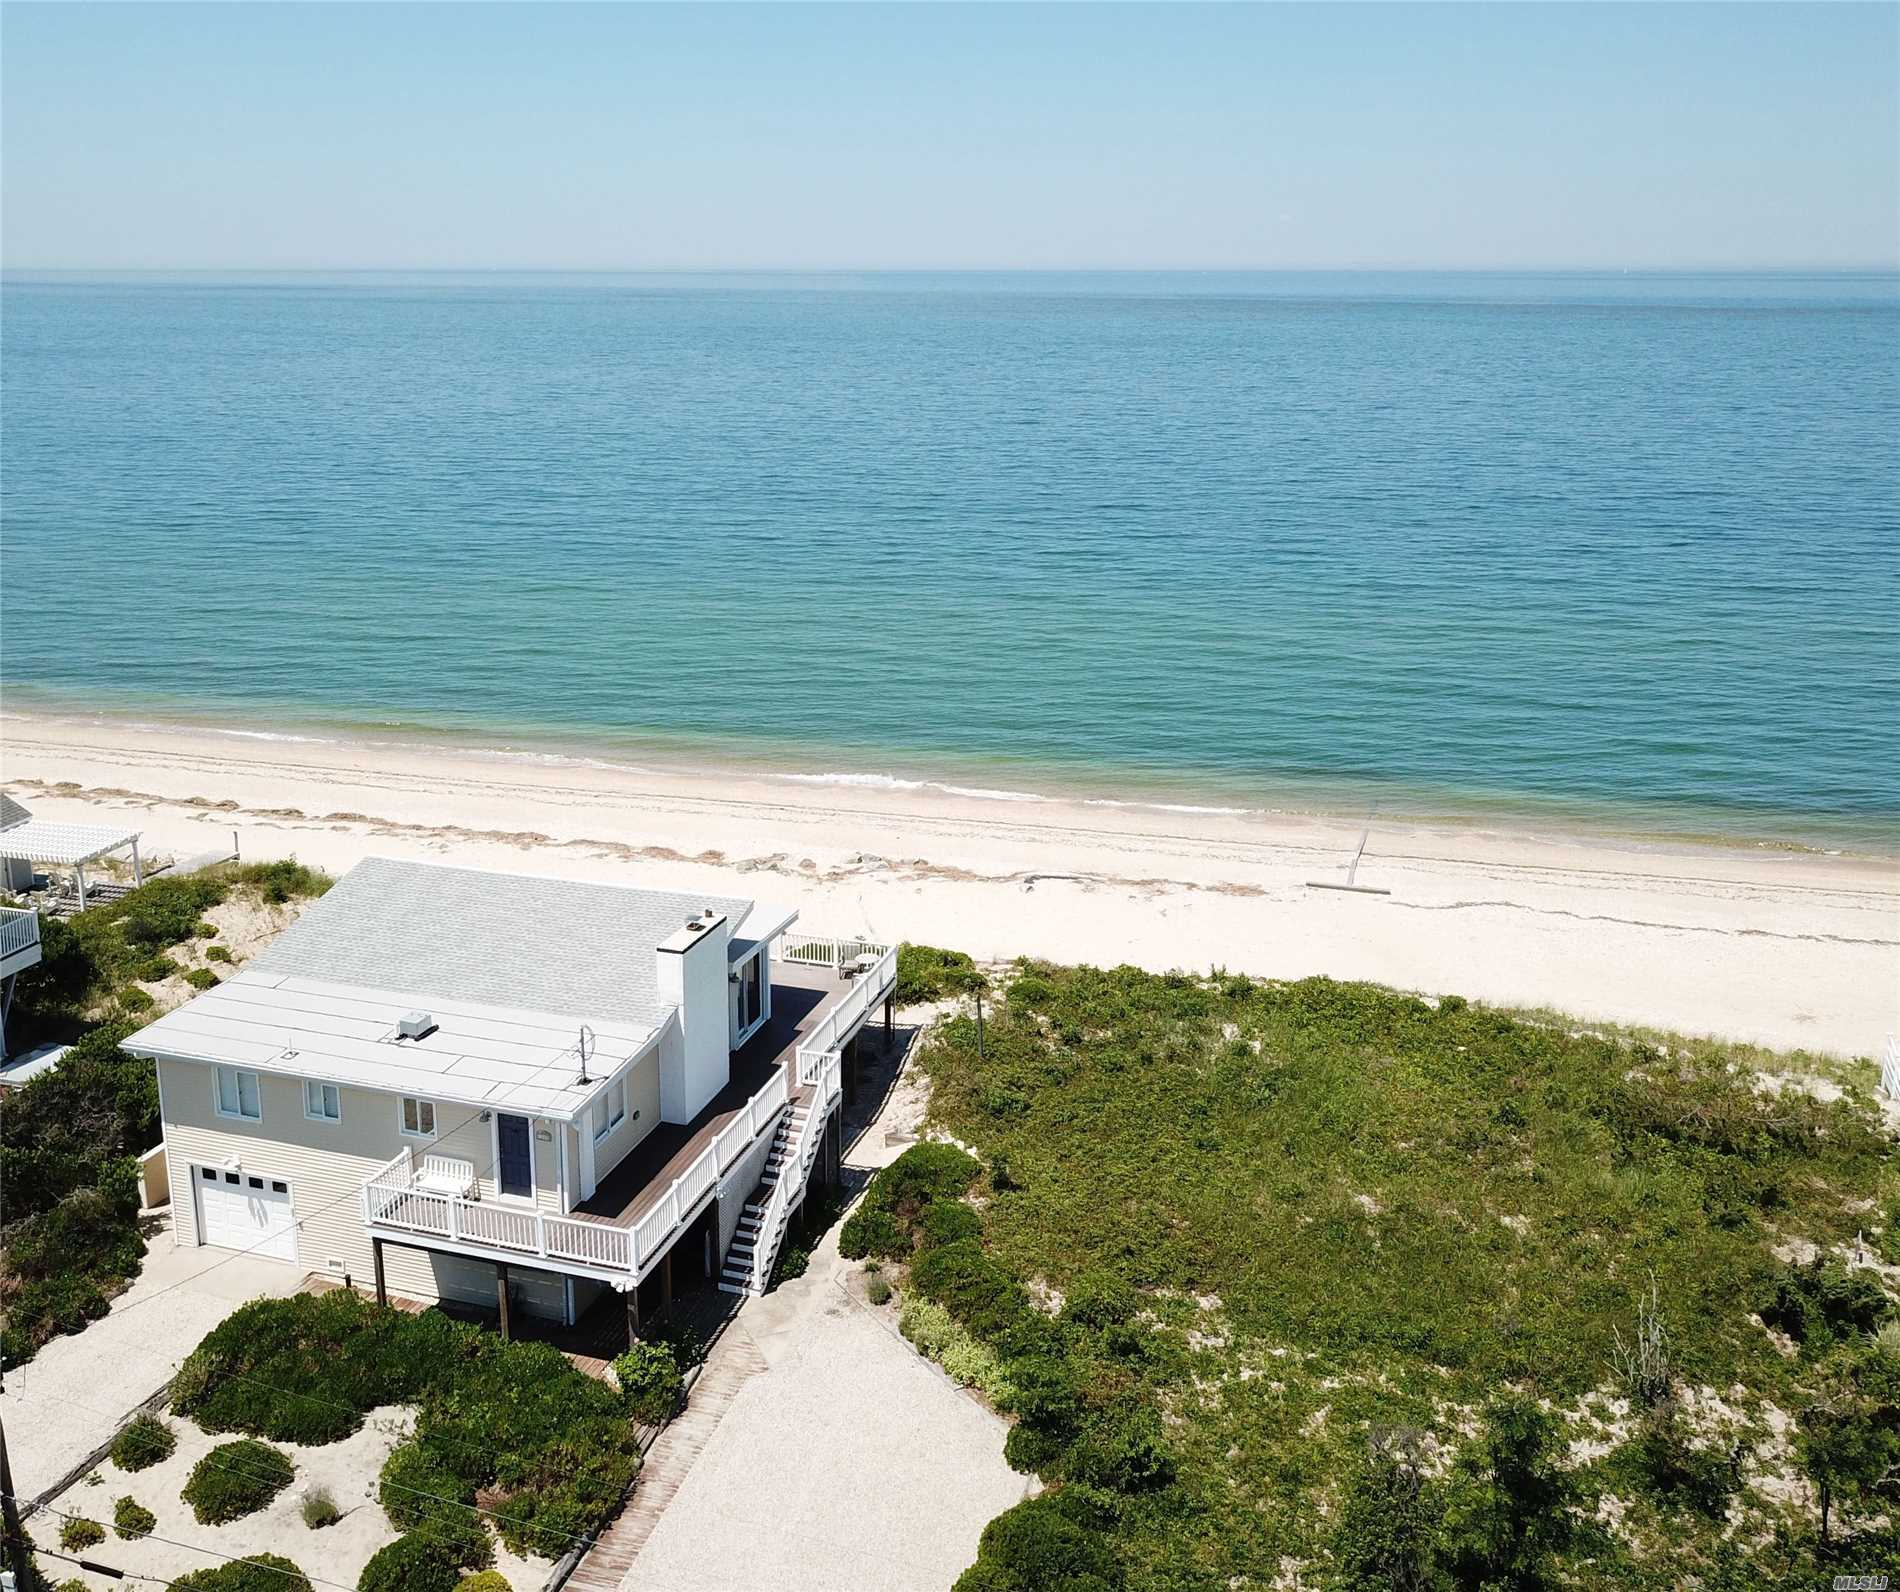 Long Island Soundfront With Panoramic Views And 100Ft. Of Deep Sandy Beach. Original Seasonal Beach Cottage Is A Distant Memory Replaced By A Completely Renovated Home Designed With Simple High End Sophistication. Easy Breezy Whitewashed Open Space Enclosed By Big Picture Windows To Let The Visions Of Water And Sand Sooth The Stresses Of The Work Week. Big Wrap Around Deck And Let Us Not Forget The Unforgettable Sunsets!